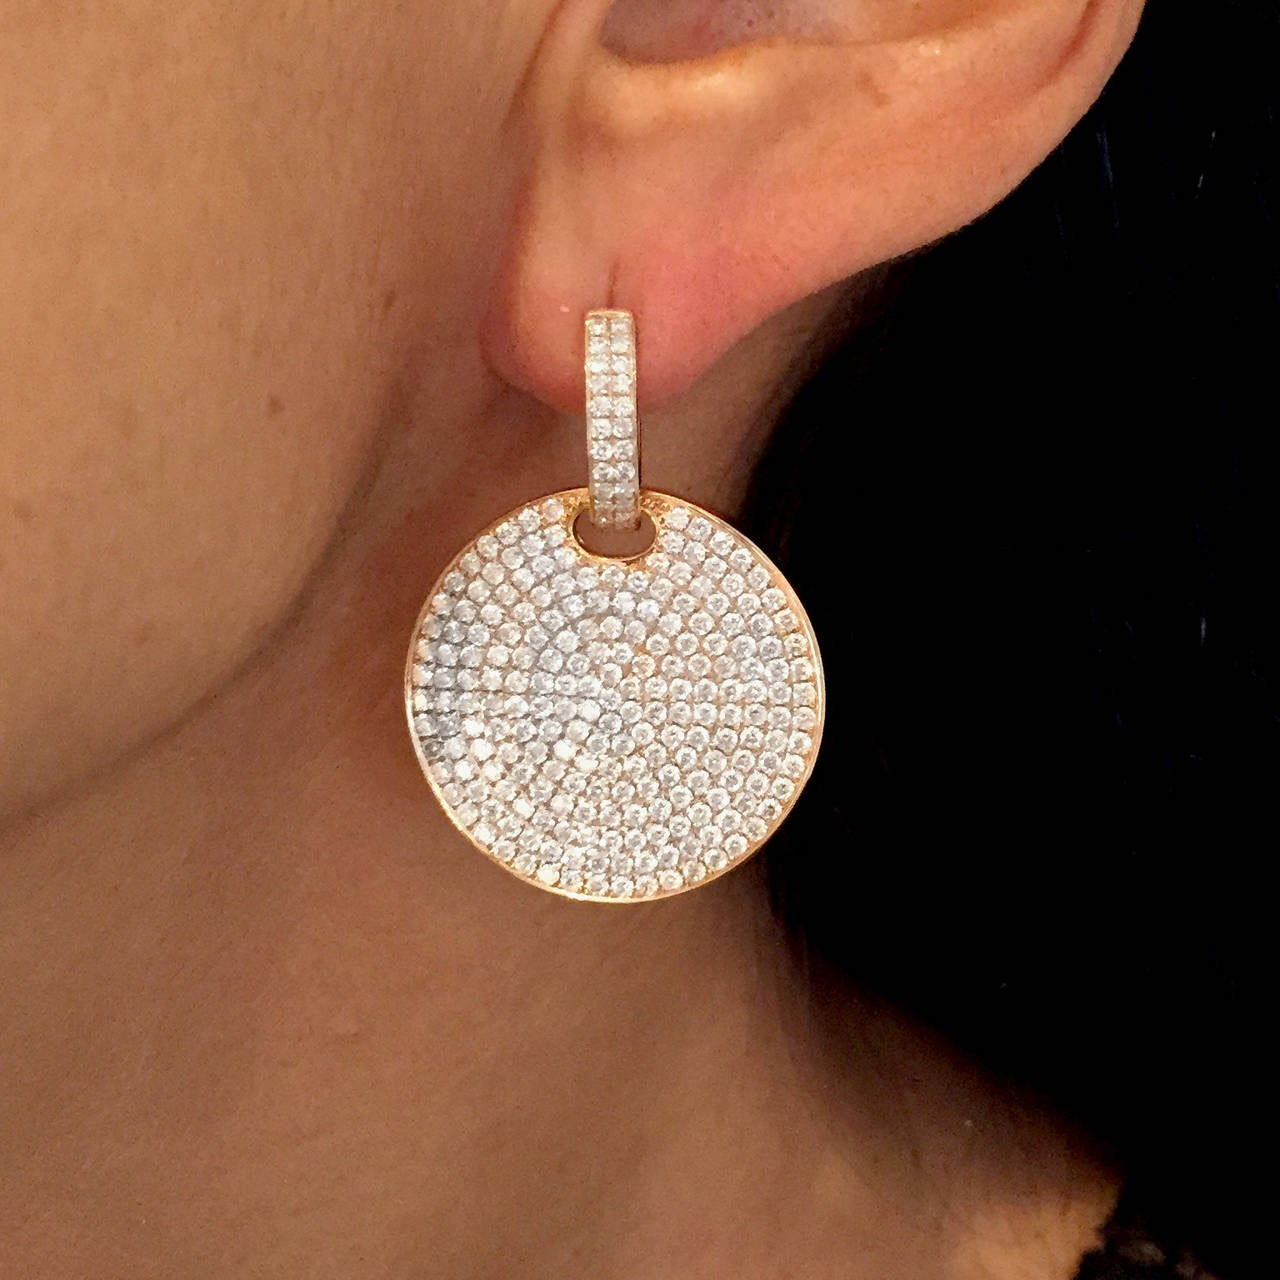 Contemporary disc-shaped earrings a full inch in diameter, inset with over 450 individual round-cut diamonds, for a total of 4.15 carats ... a sparkling accent to any formal evening.